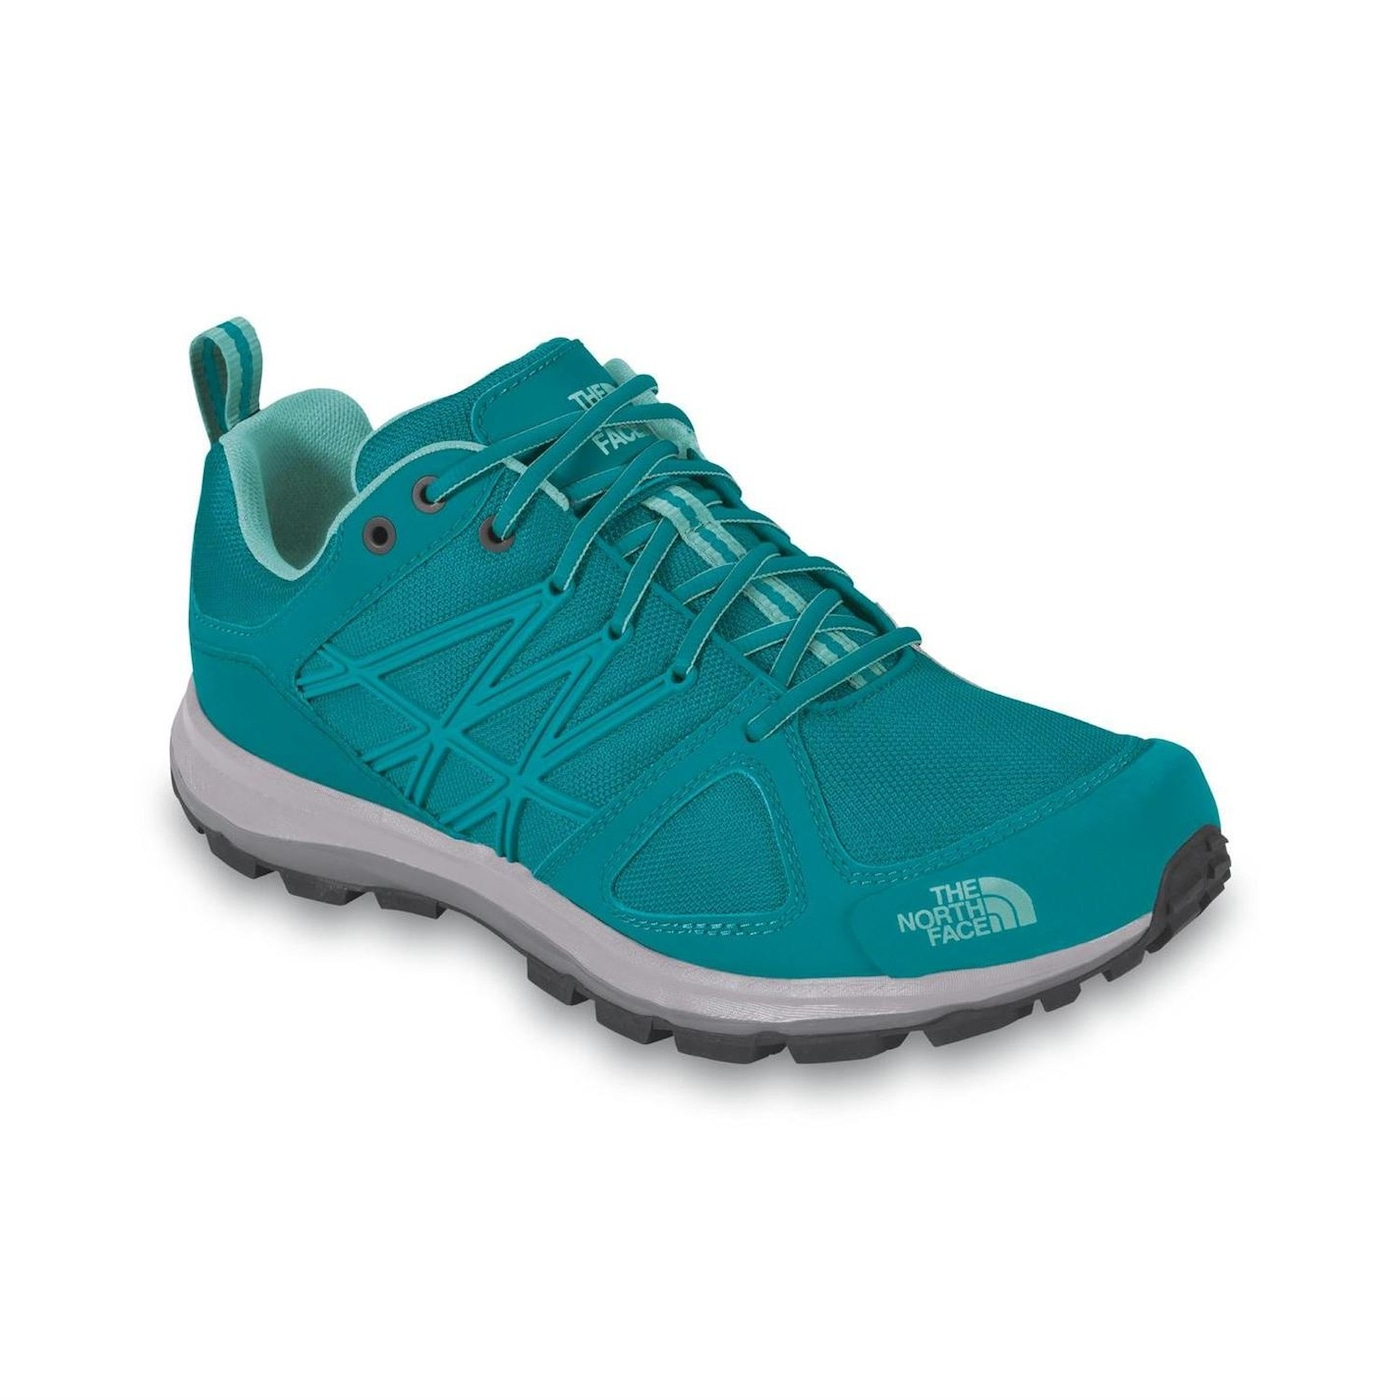 The North Face Face Litewave Ld43